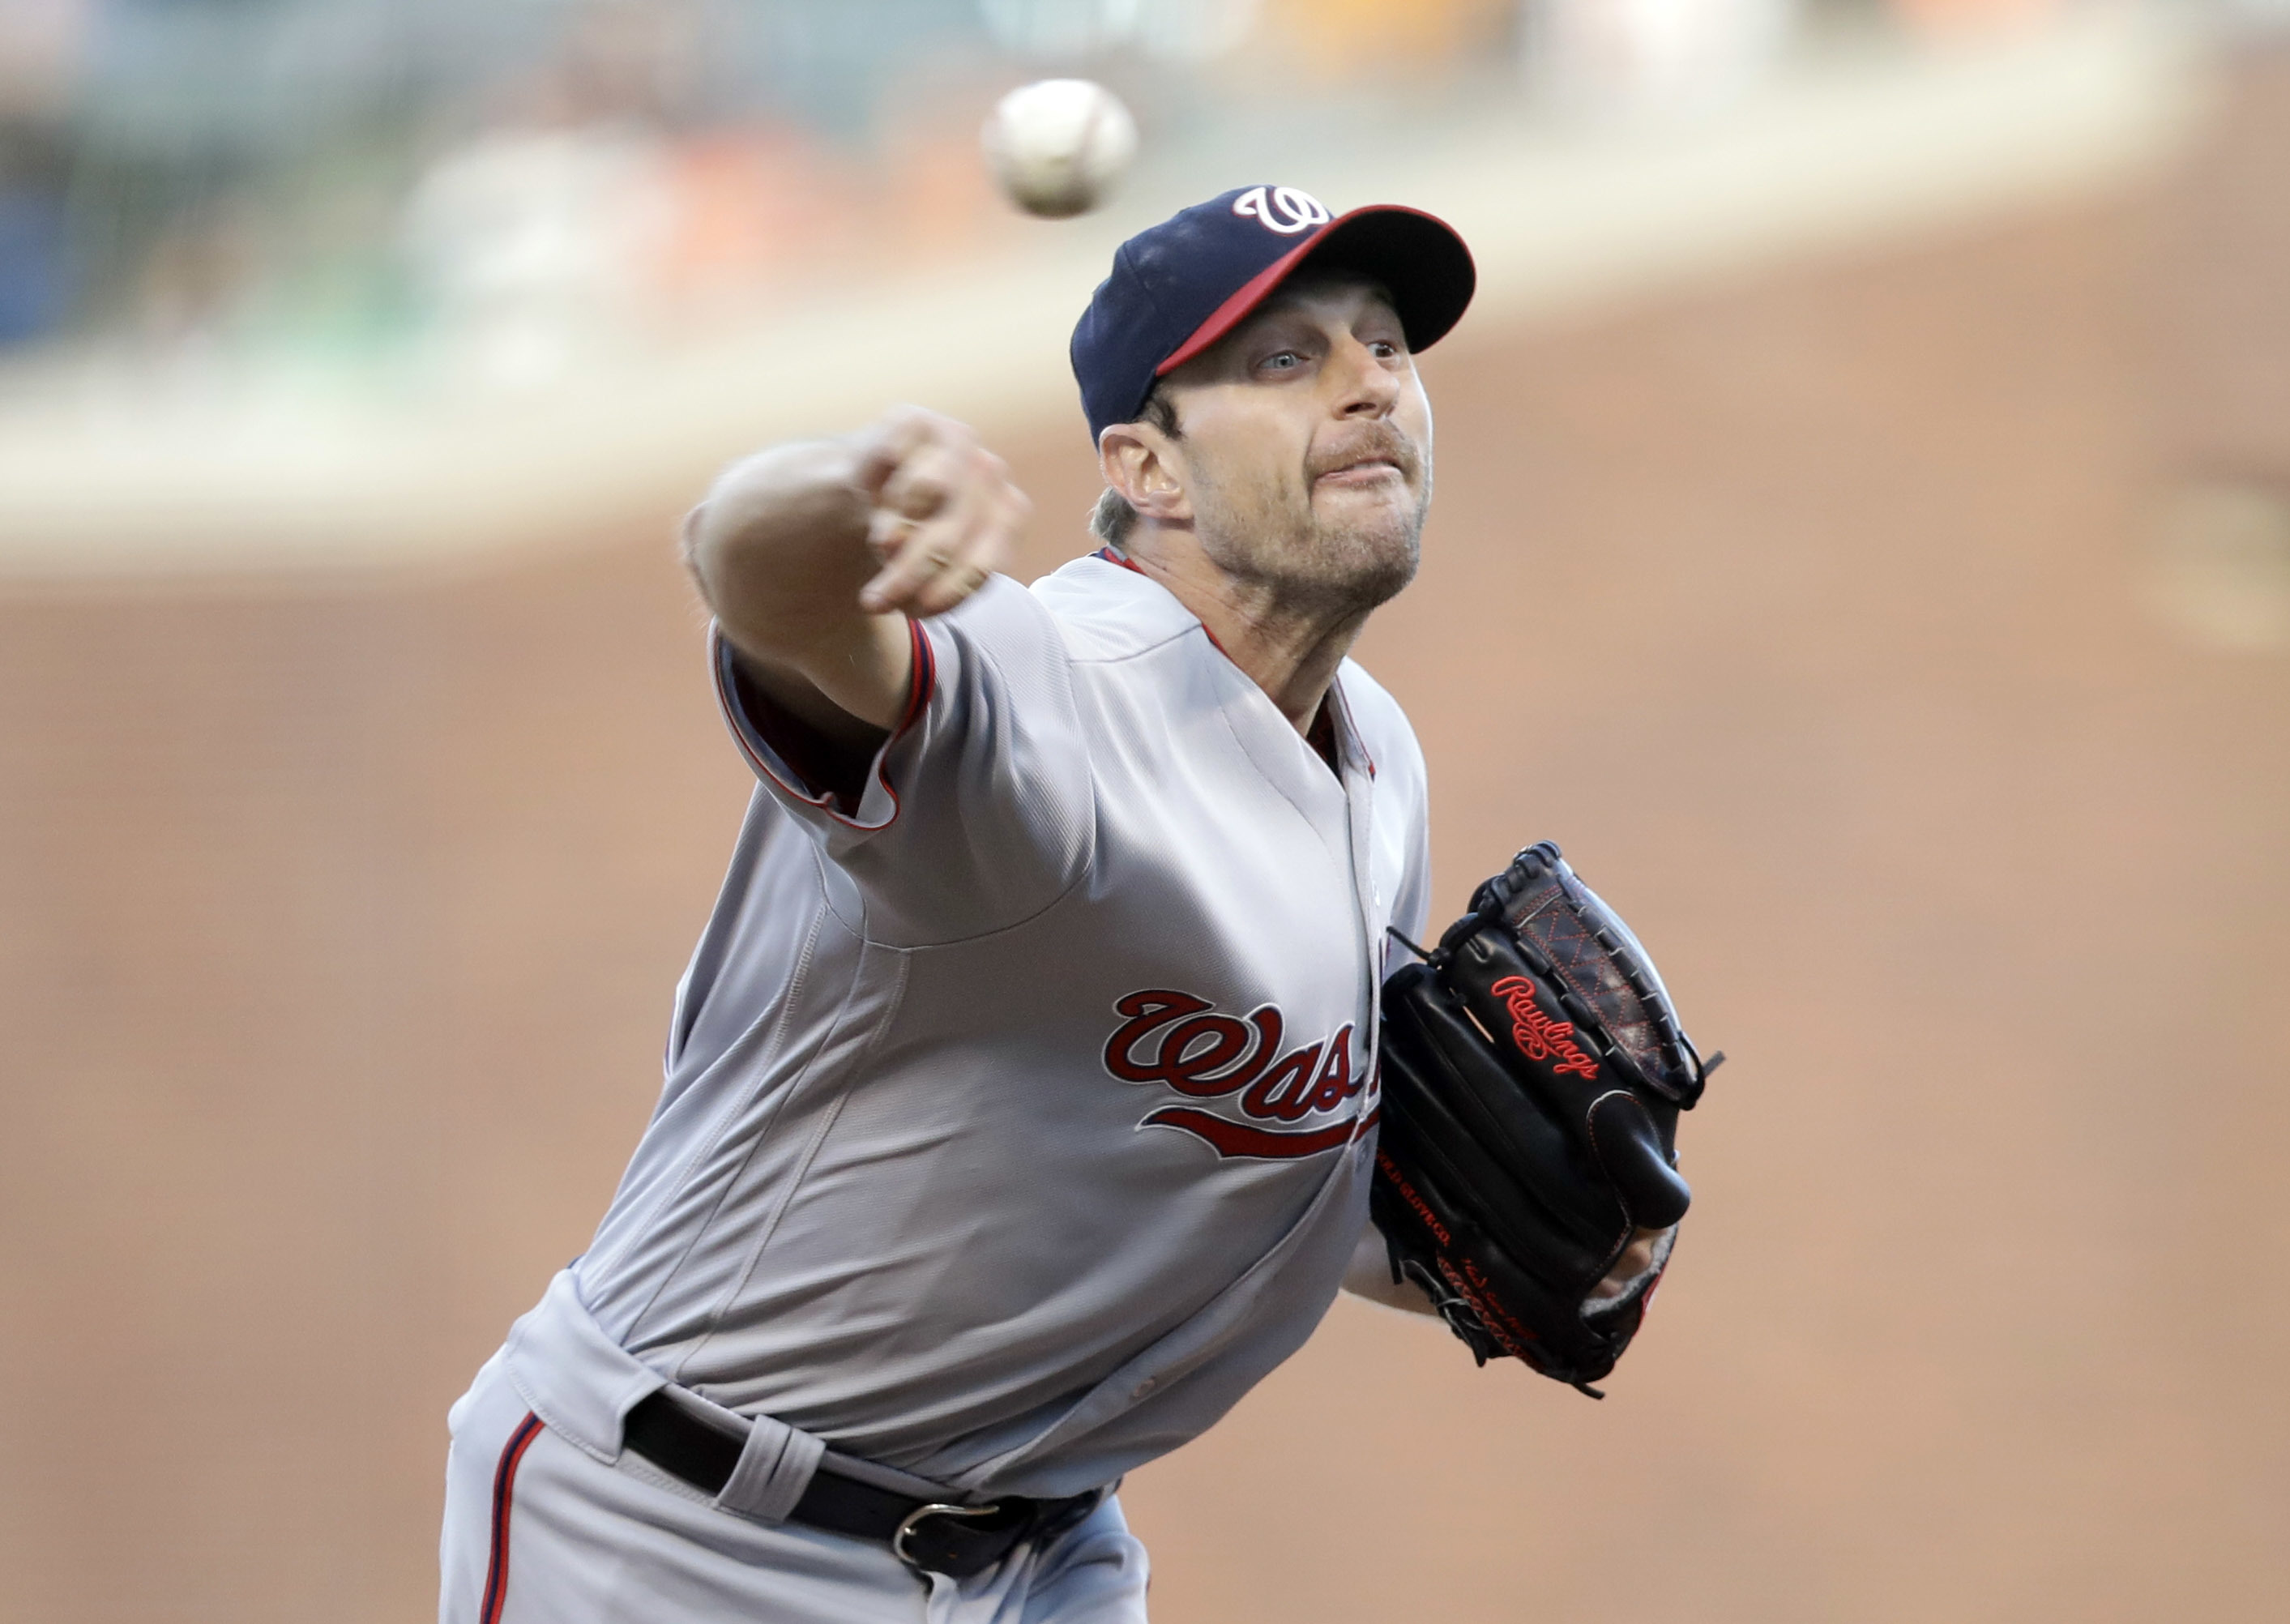 Washington Nationals starting pitcher Max Scherzer throws to the San Francisco Giants during the first inning of a baseball game Friday, July 29, 2016, in San Francisco. (AP Photo/Marcio Jose Sanchez)